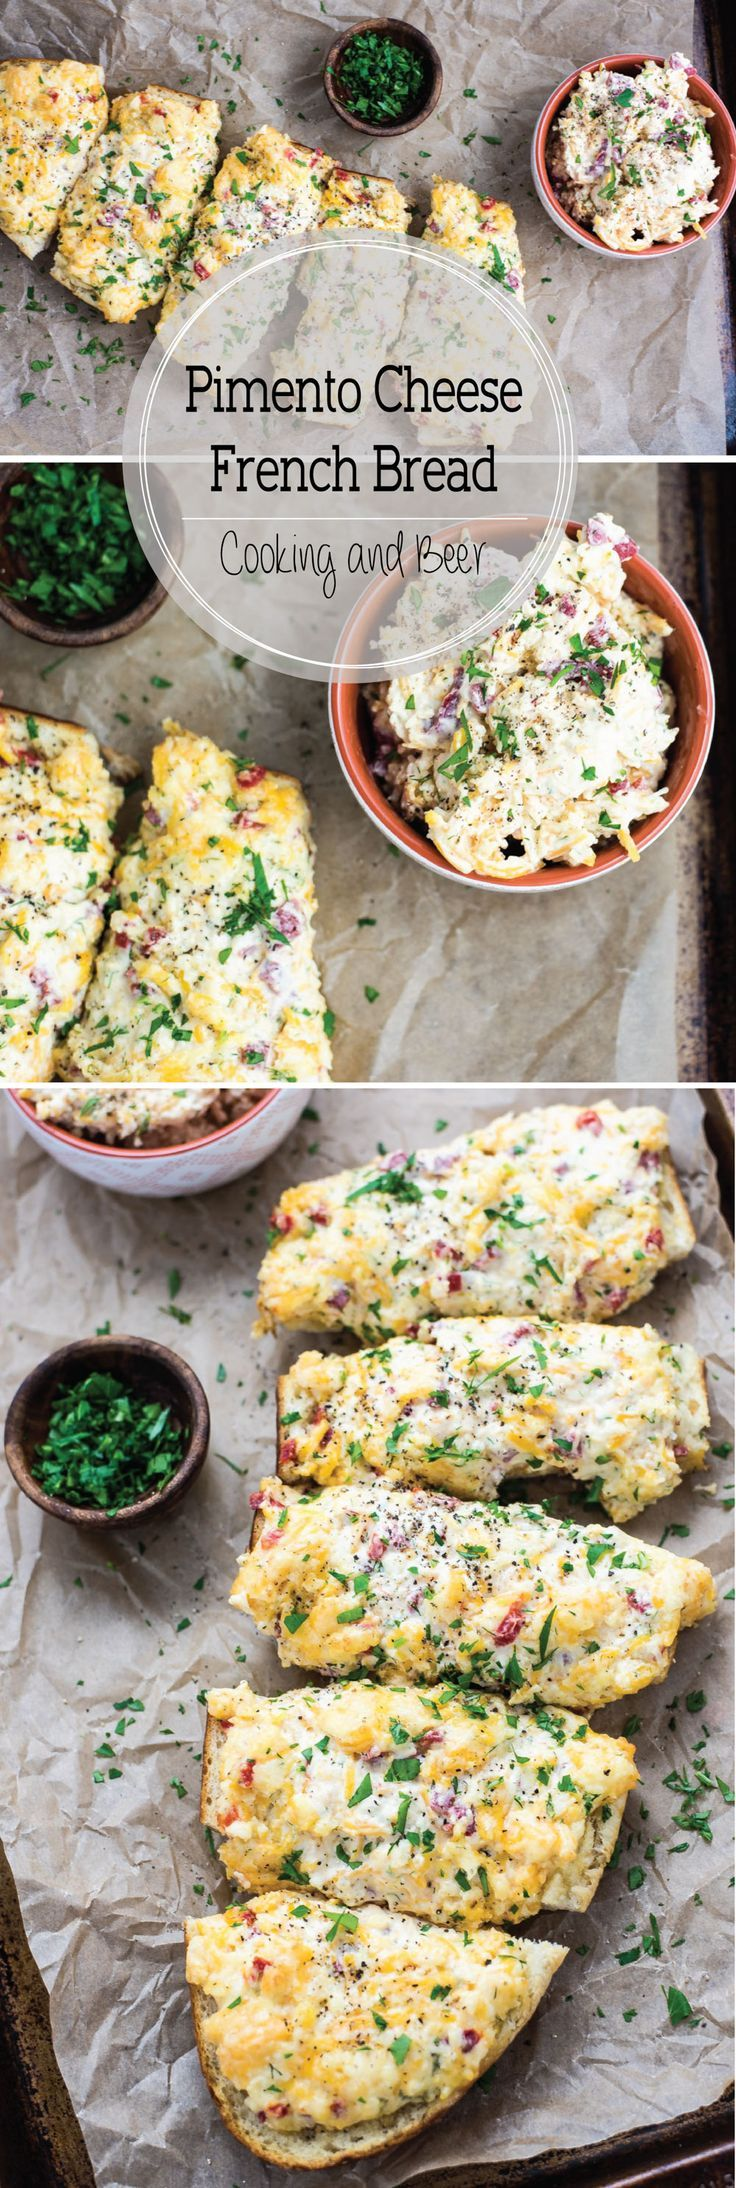 Pimento Cheese French Bread is a fun way to bring more pimento cheese in your life! It is the perfect appetizer or snack!